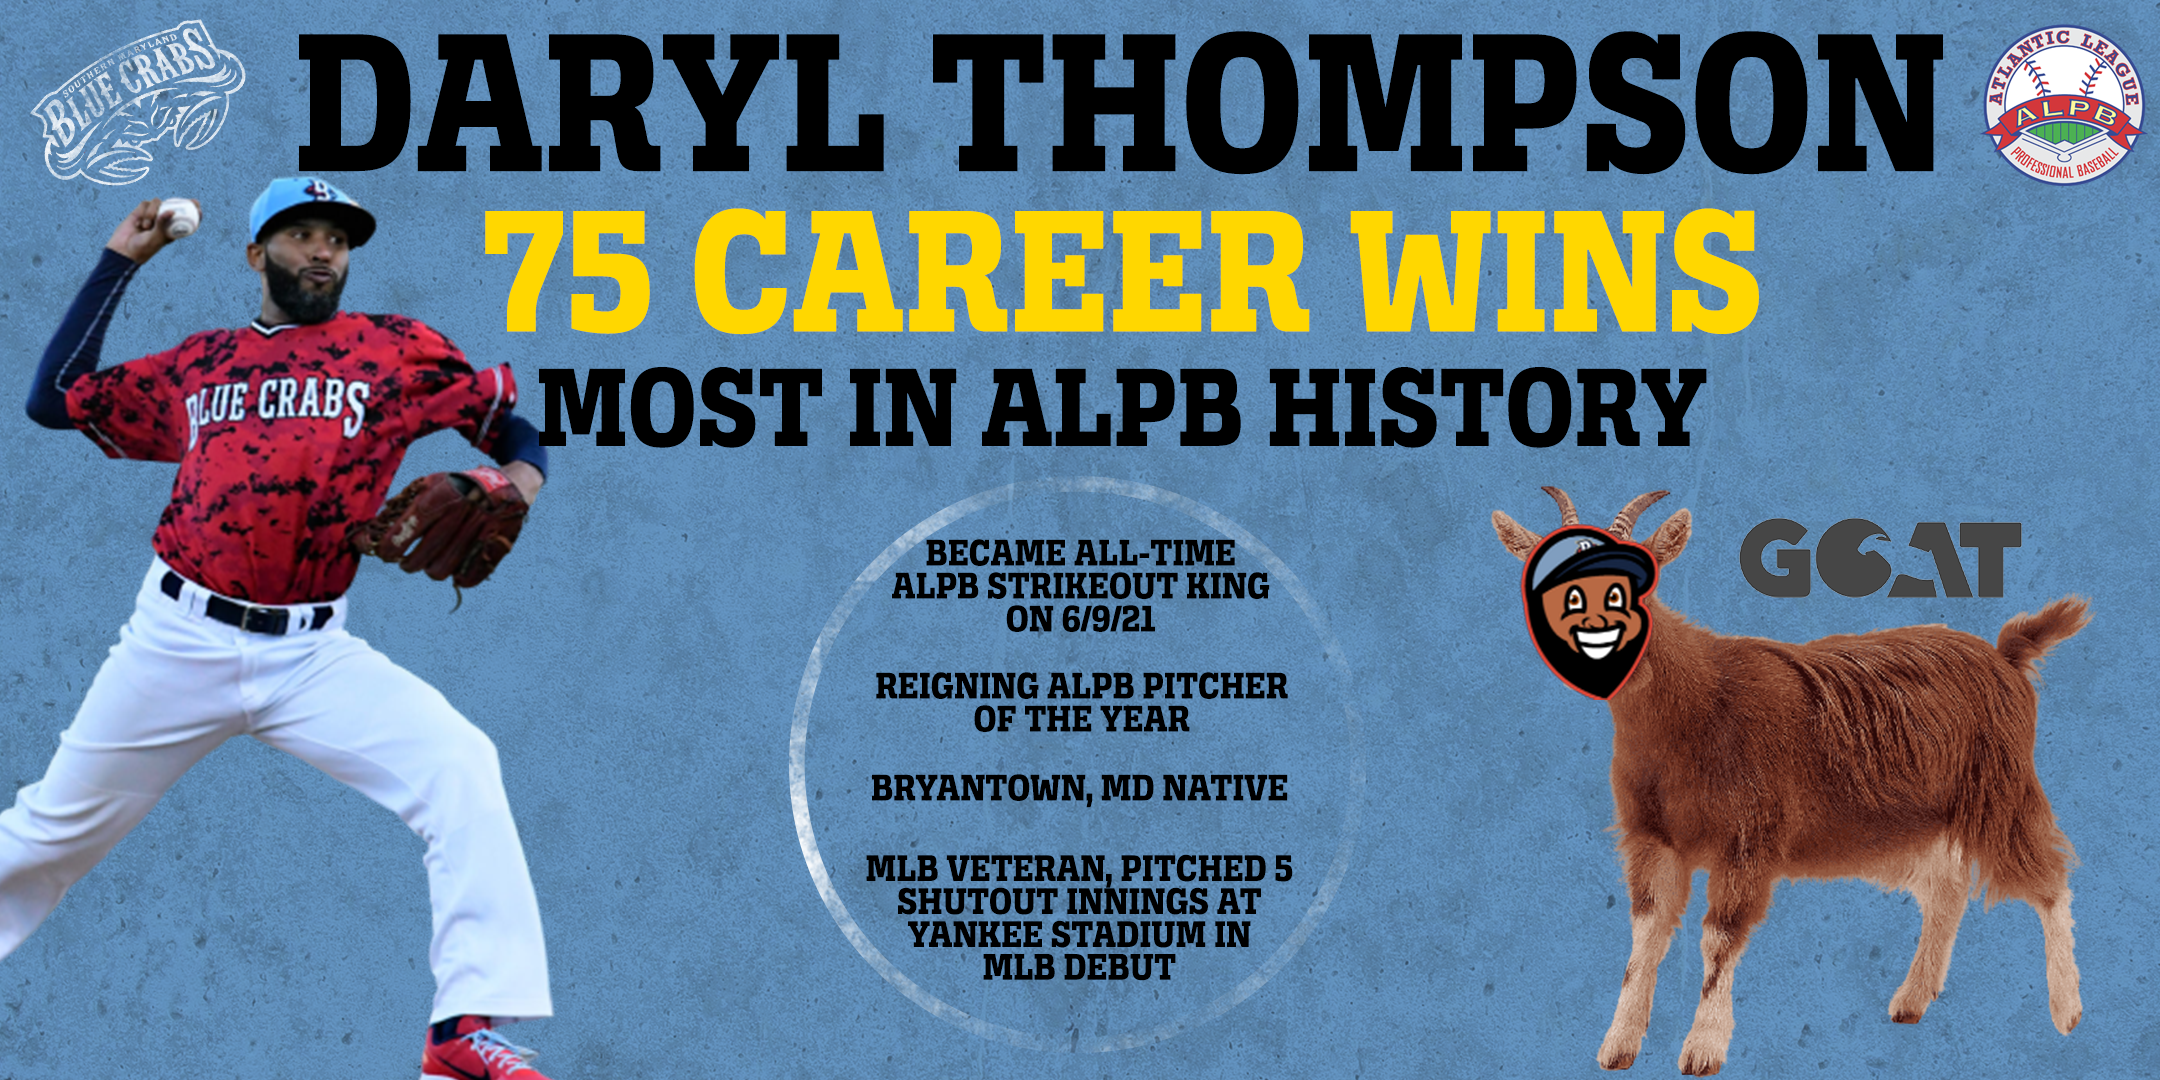 Daryl Thompson Becomes All-Time ALPB Wins, Strikeouts King